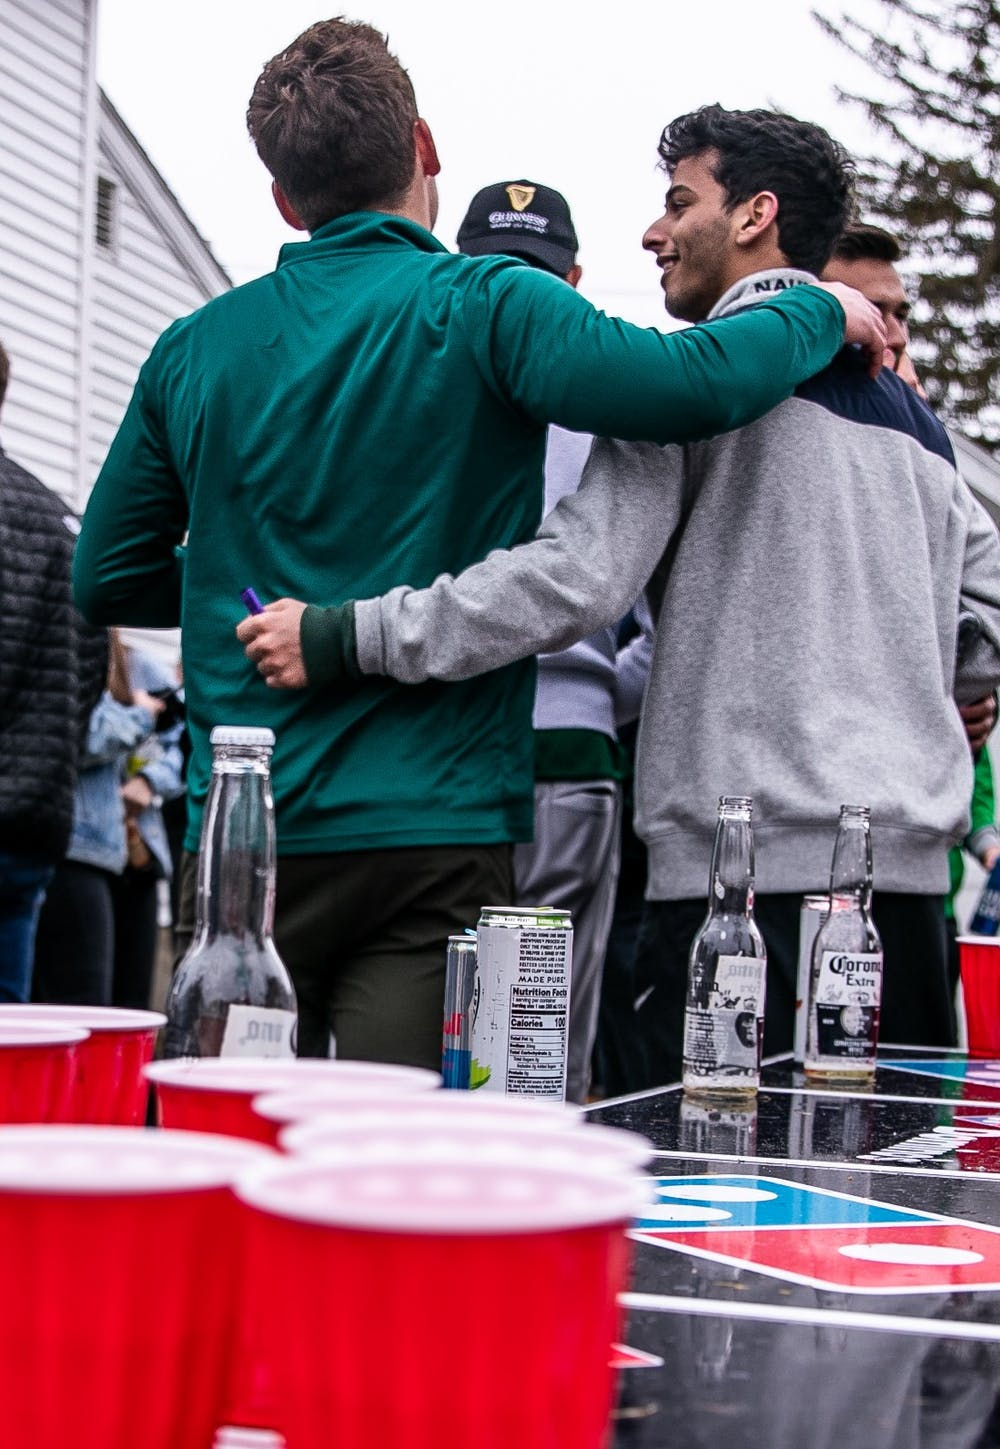 Students party at housing near MSU on the Saturday before St. Patrick's Day despite health warnings related to COVID-19.